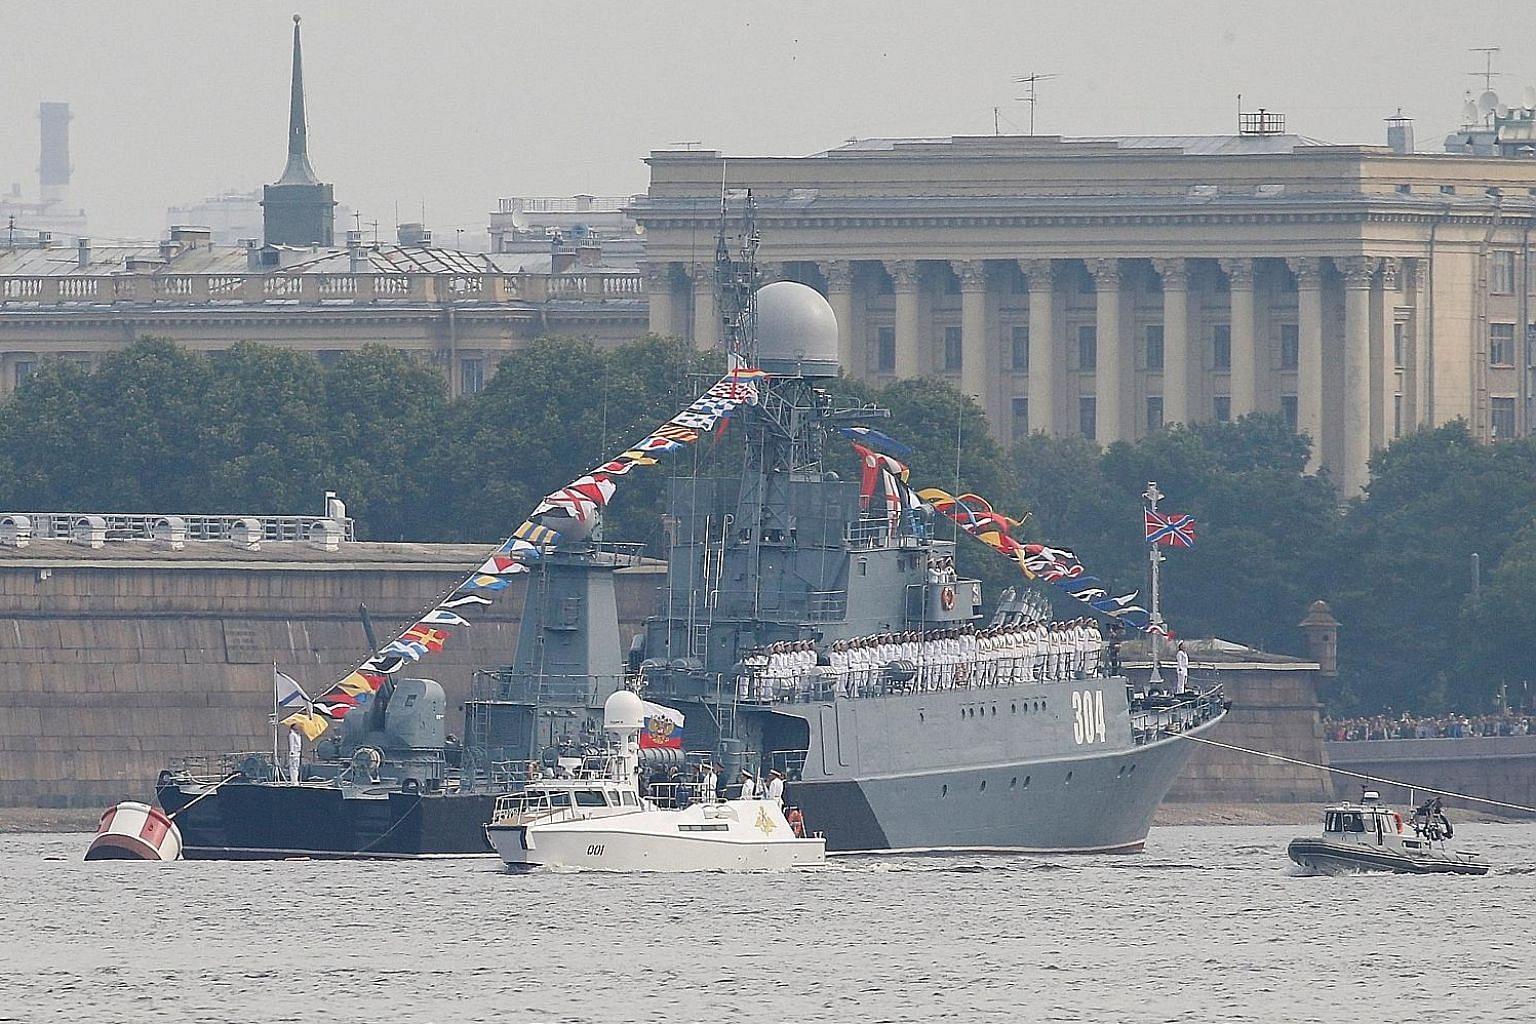 Russian President Vladimir Putin overseeing the Navy Day parade on board his white presidential cutter along the Neva River near St Petersburg yesterday.